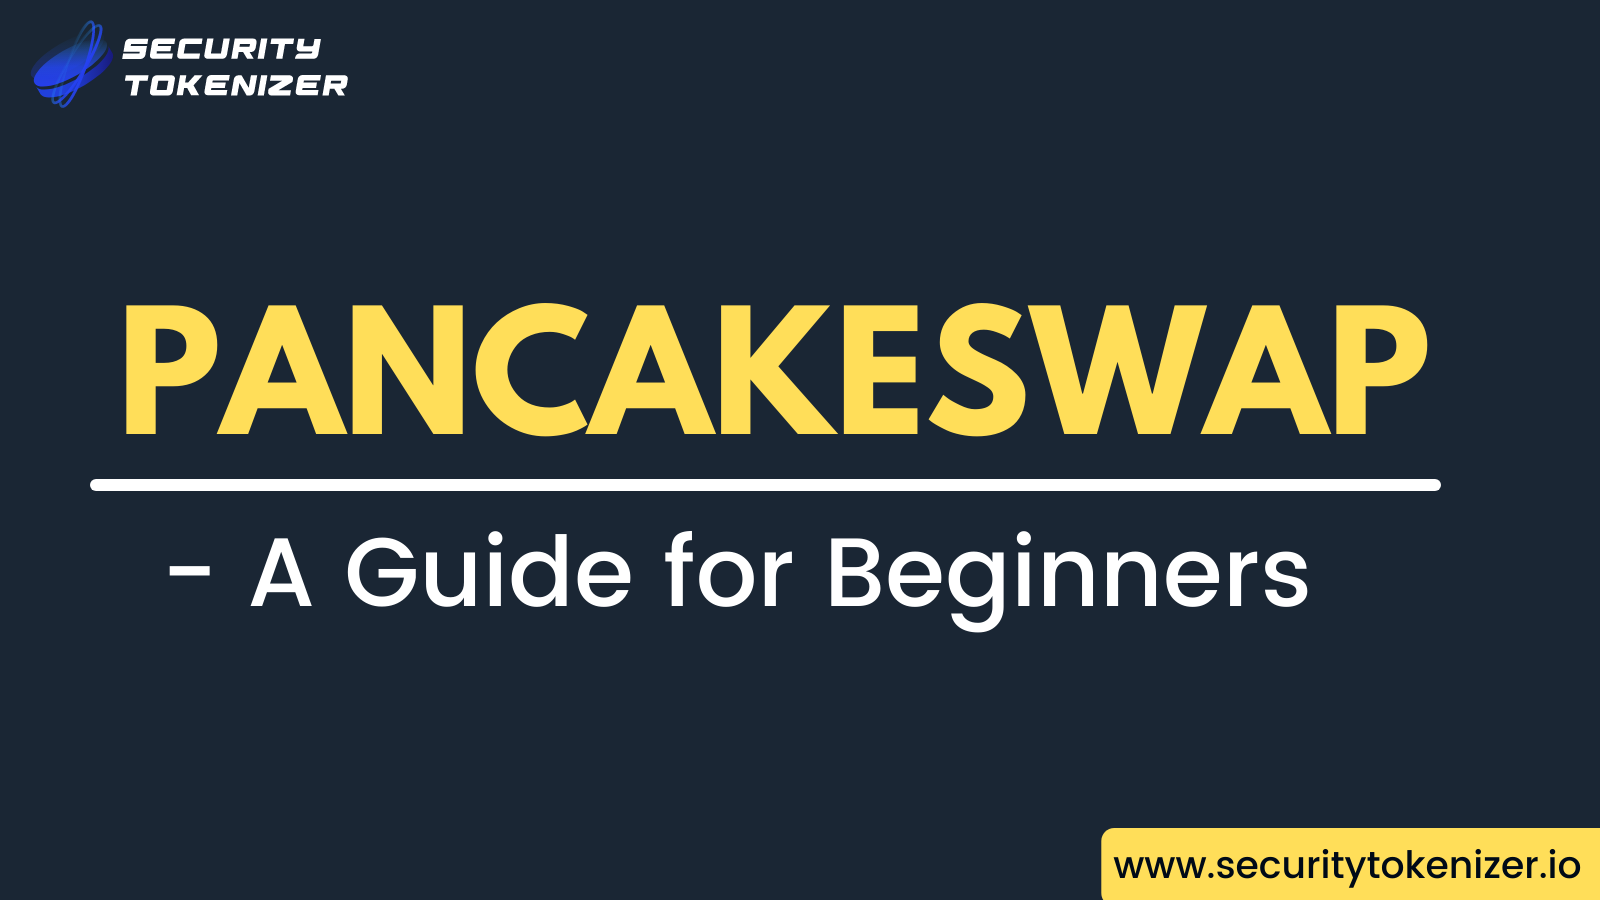 What Is Pancakeswap?  - A Beginners Guide